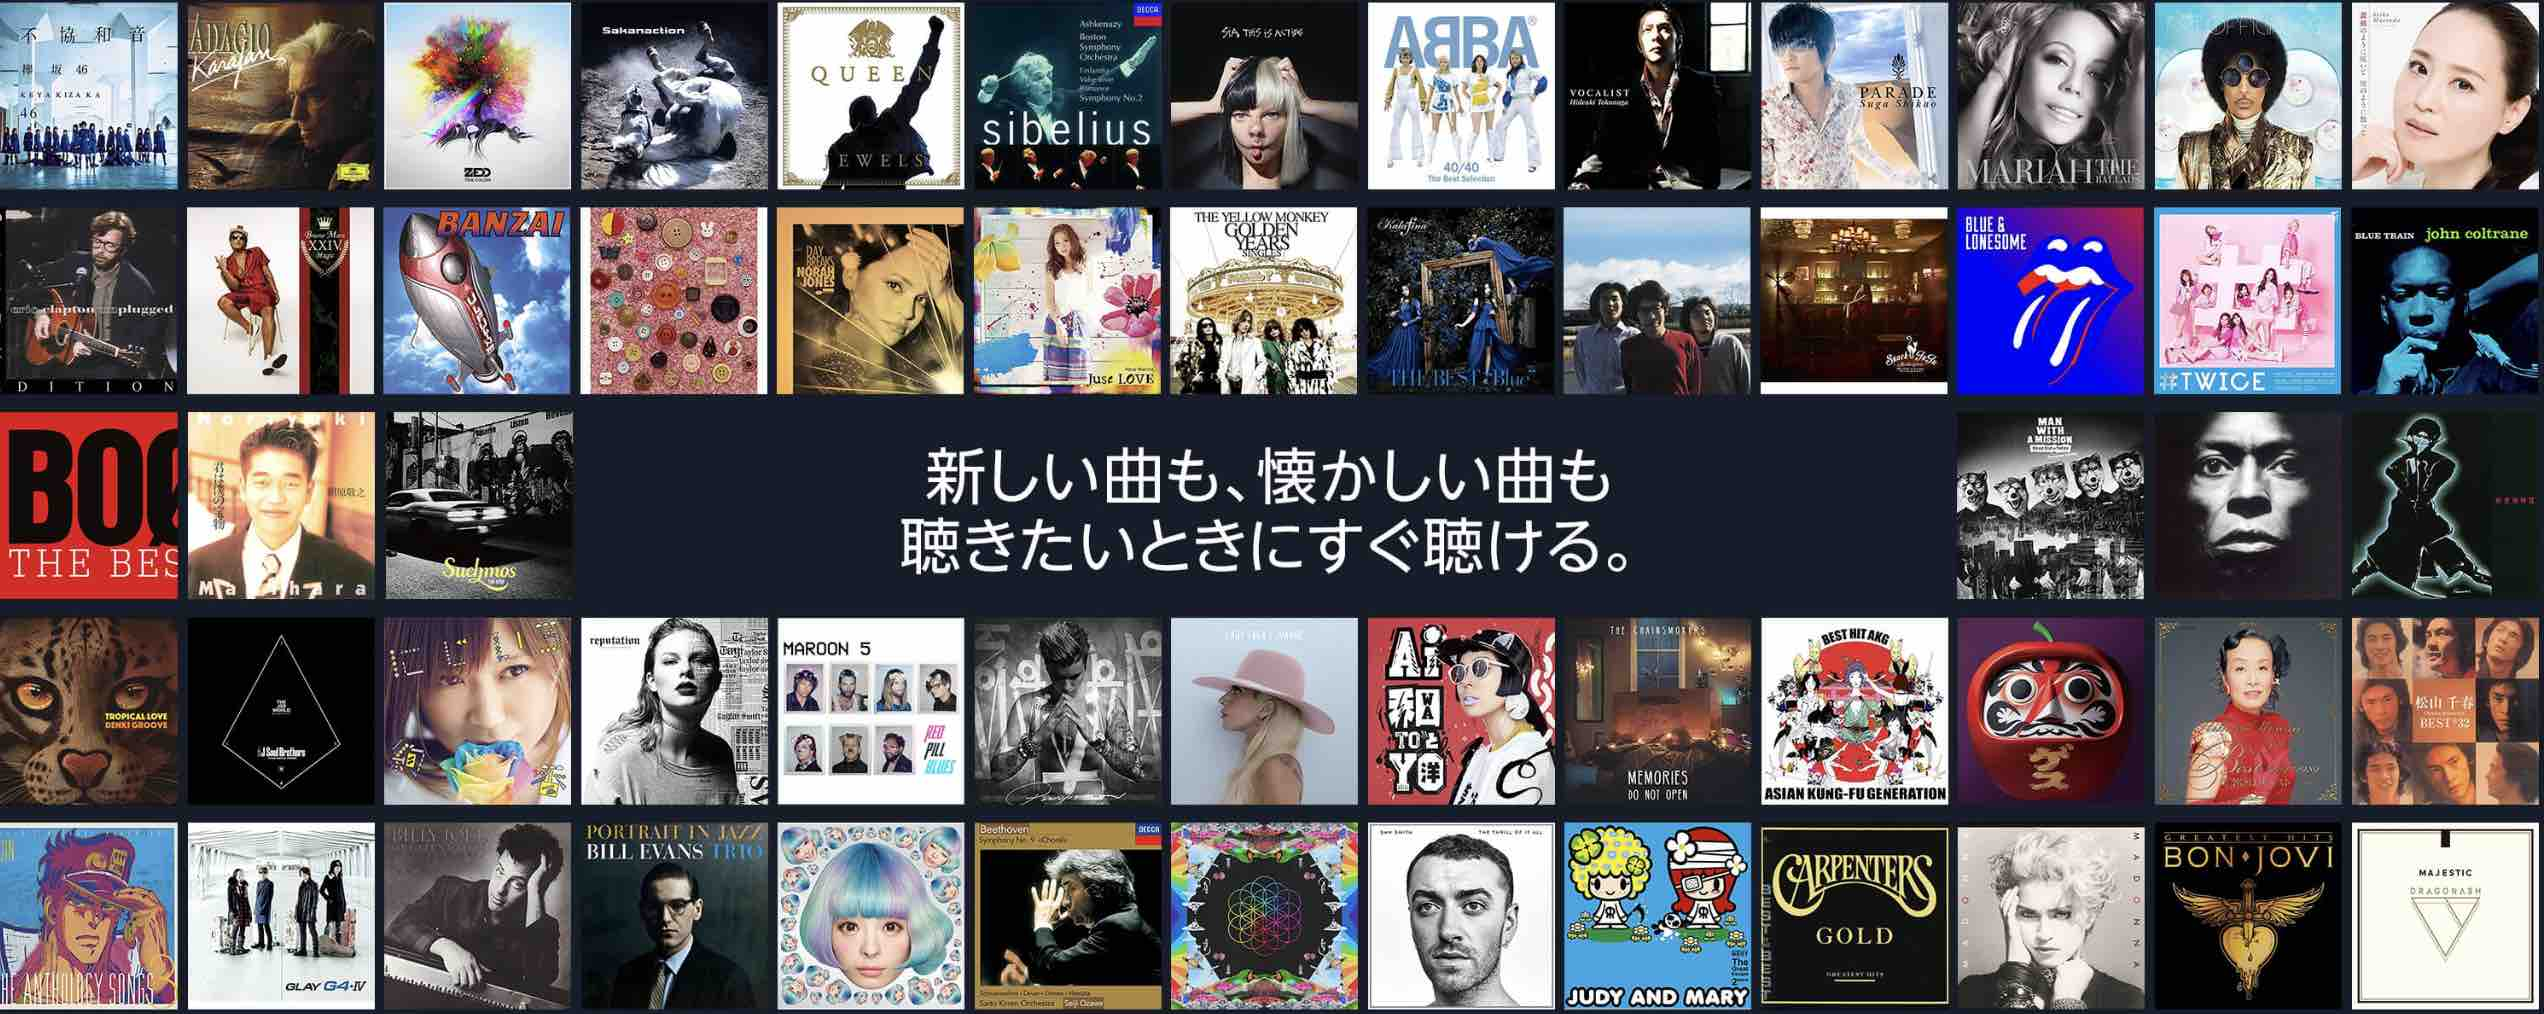 Amazon Music Unlimitedの画像